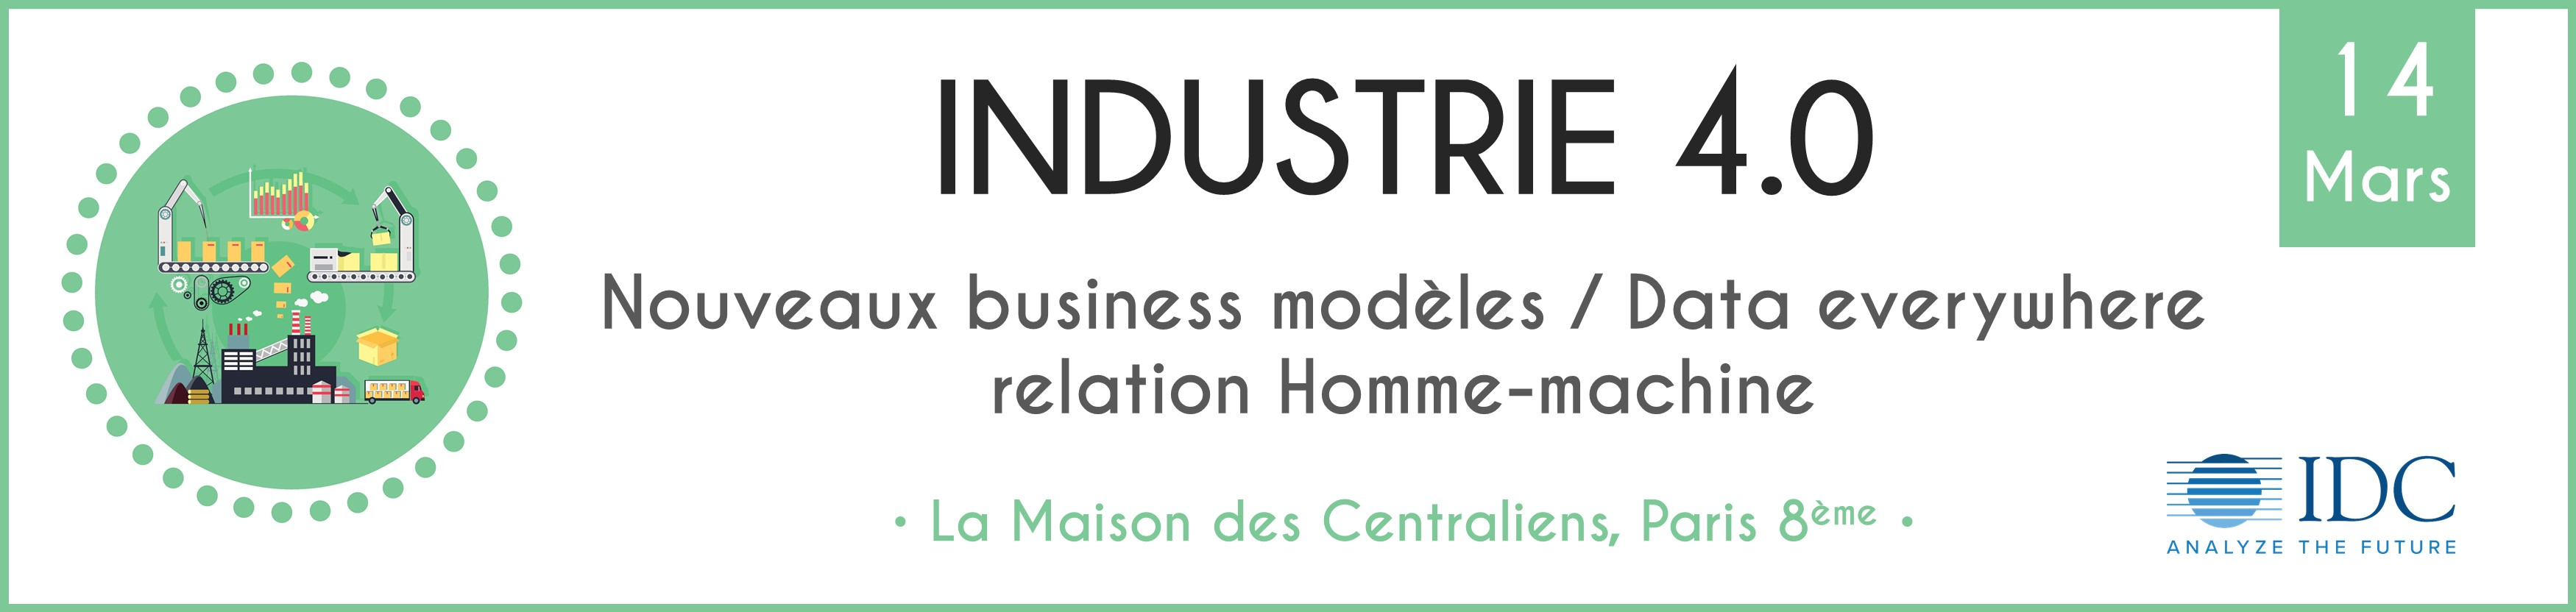 Conférence IDC - Industrie 4.0 - 14 mars 2019